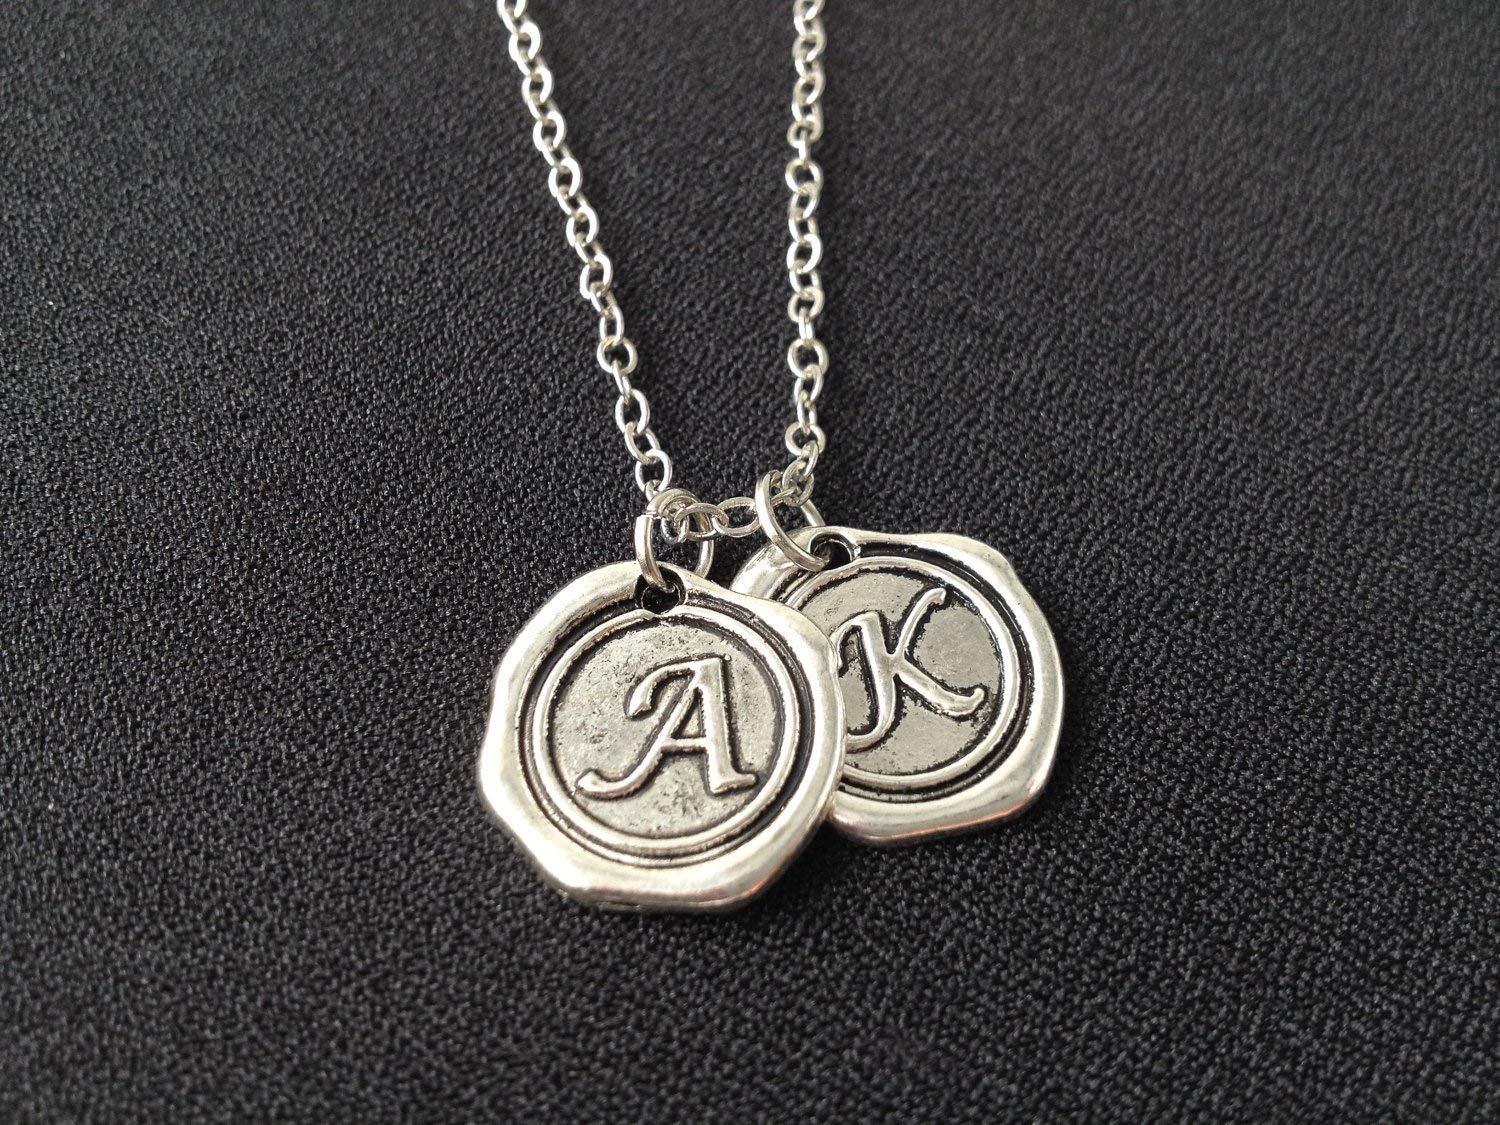 2 Initial Necklace,Wax Seal Necklace,Custom Necklace,Monogram charms,Personalized Necklace,Monogrammed Gifts